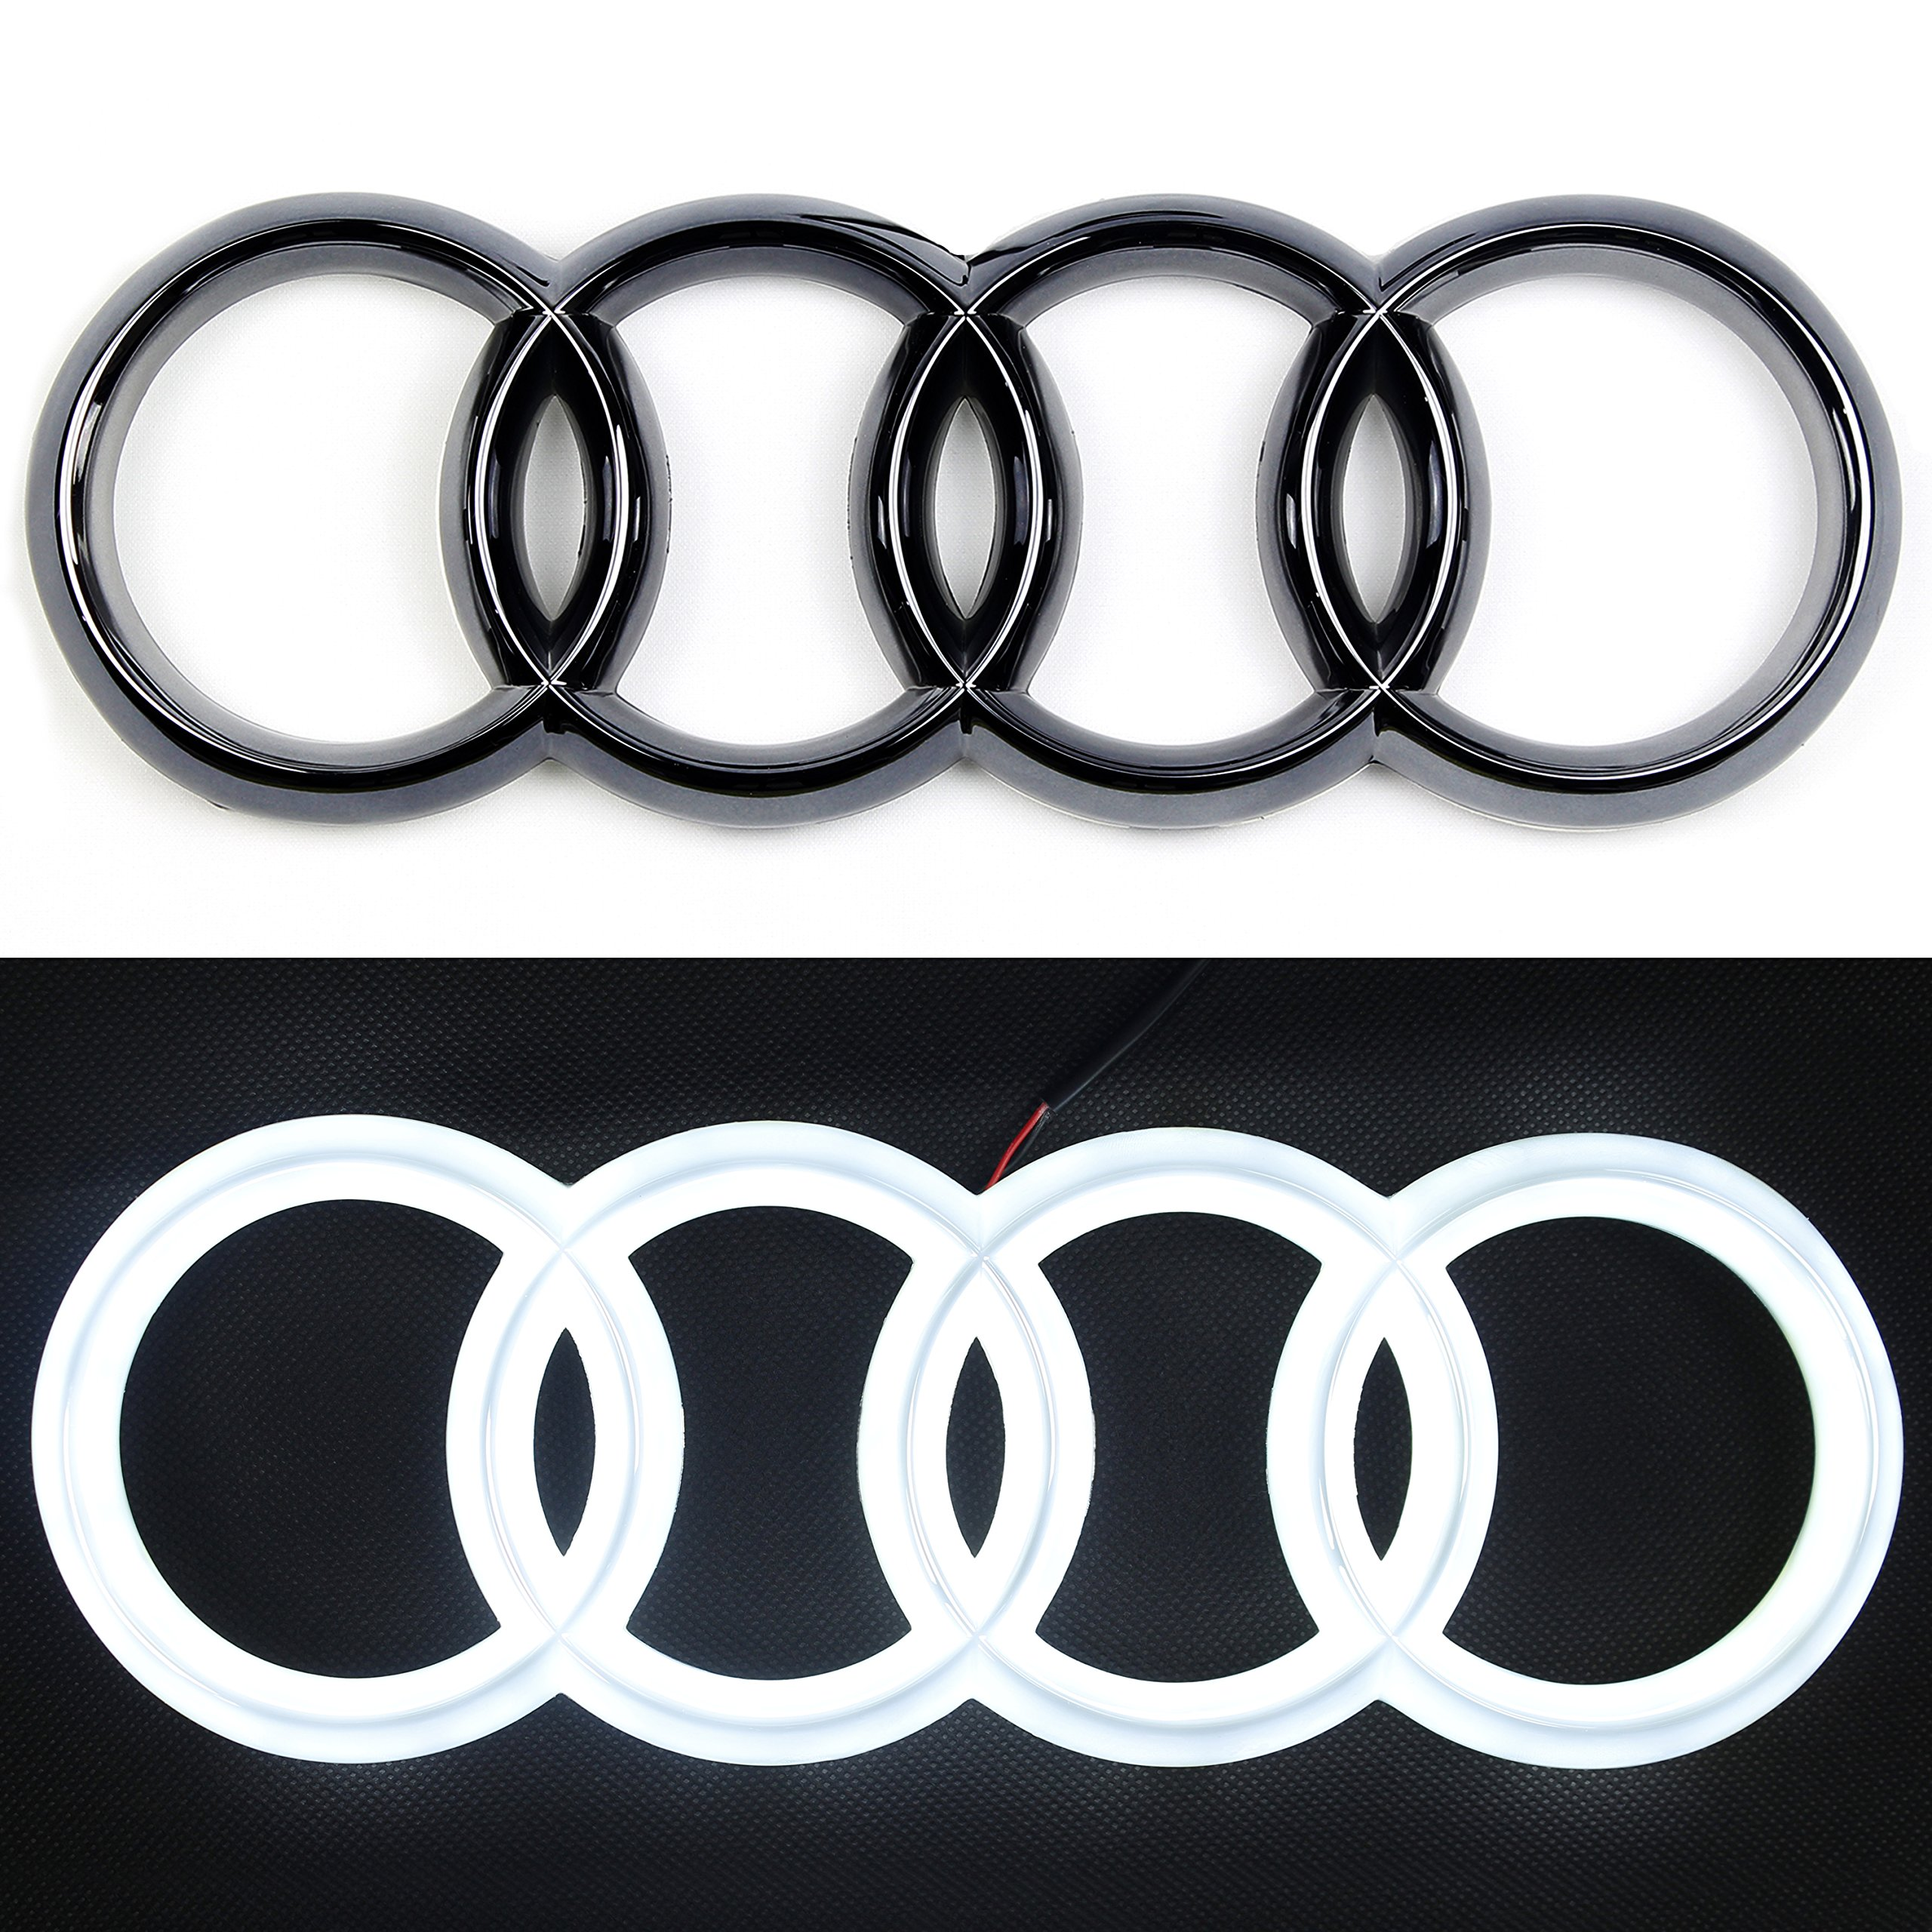 Cheap Audi Grill Emblem, find Audi Grill Emblem deals on line at